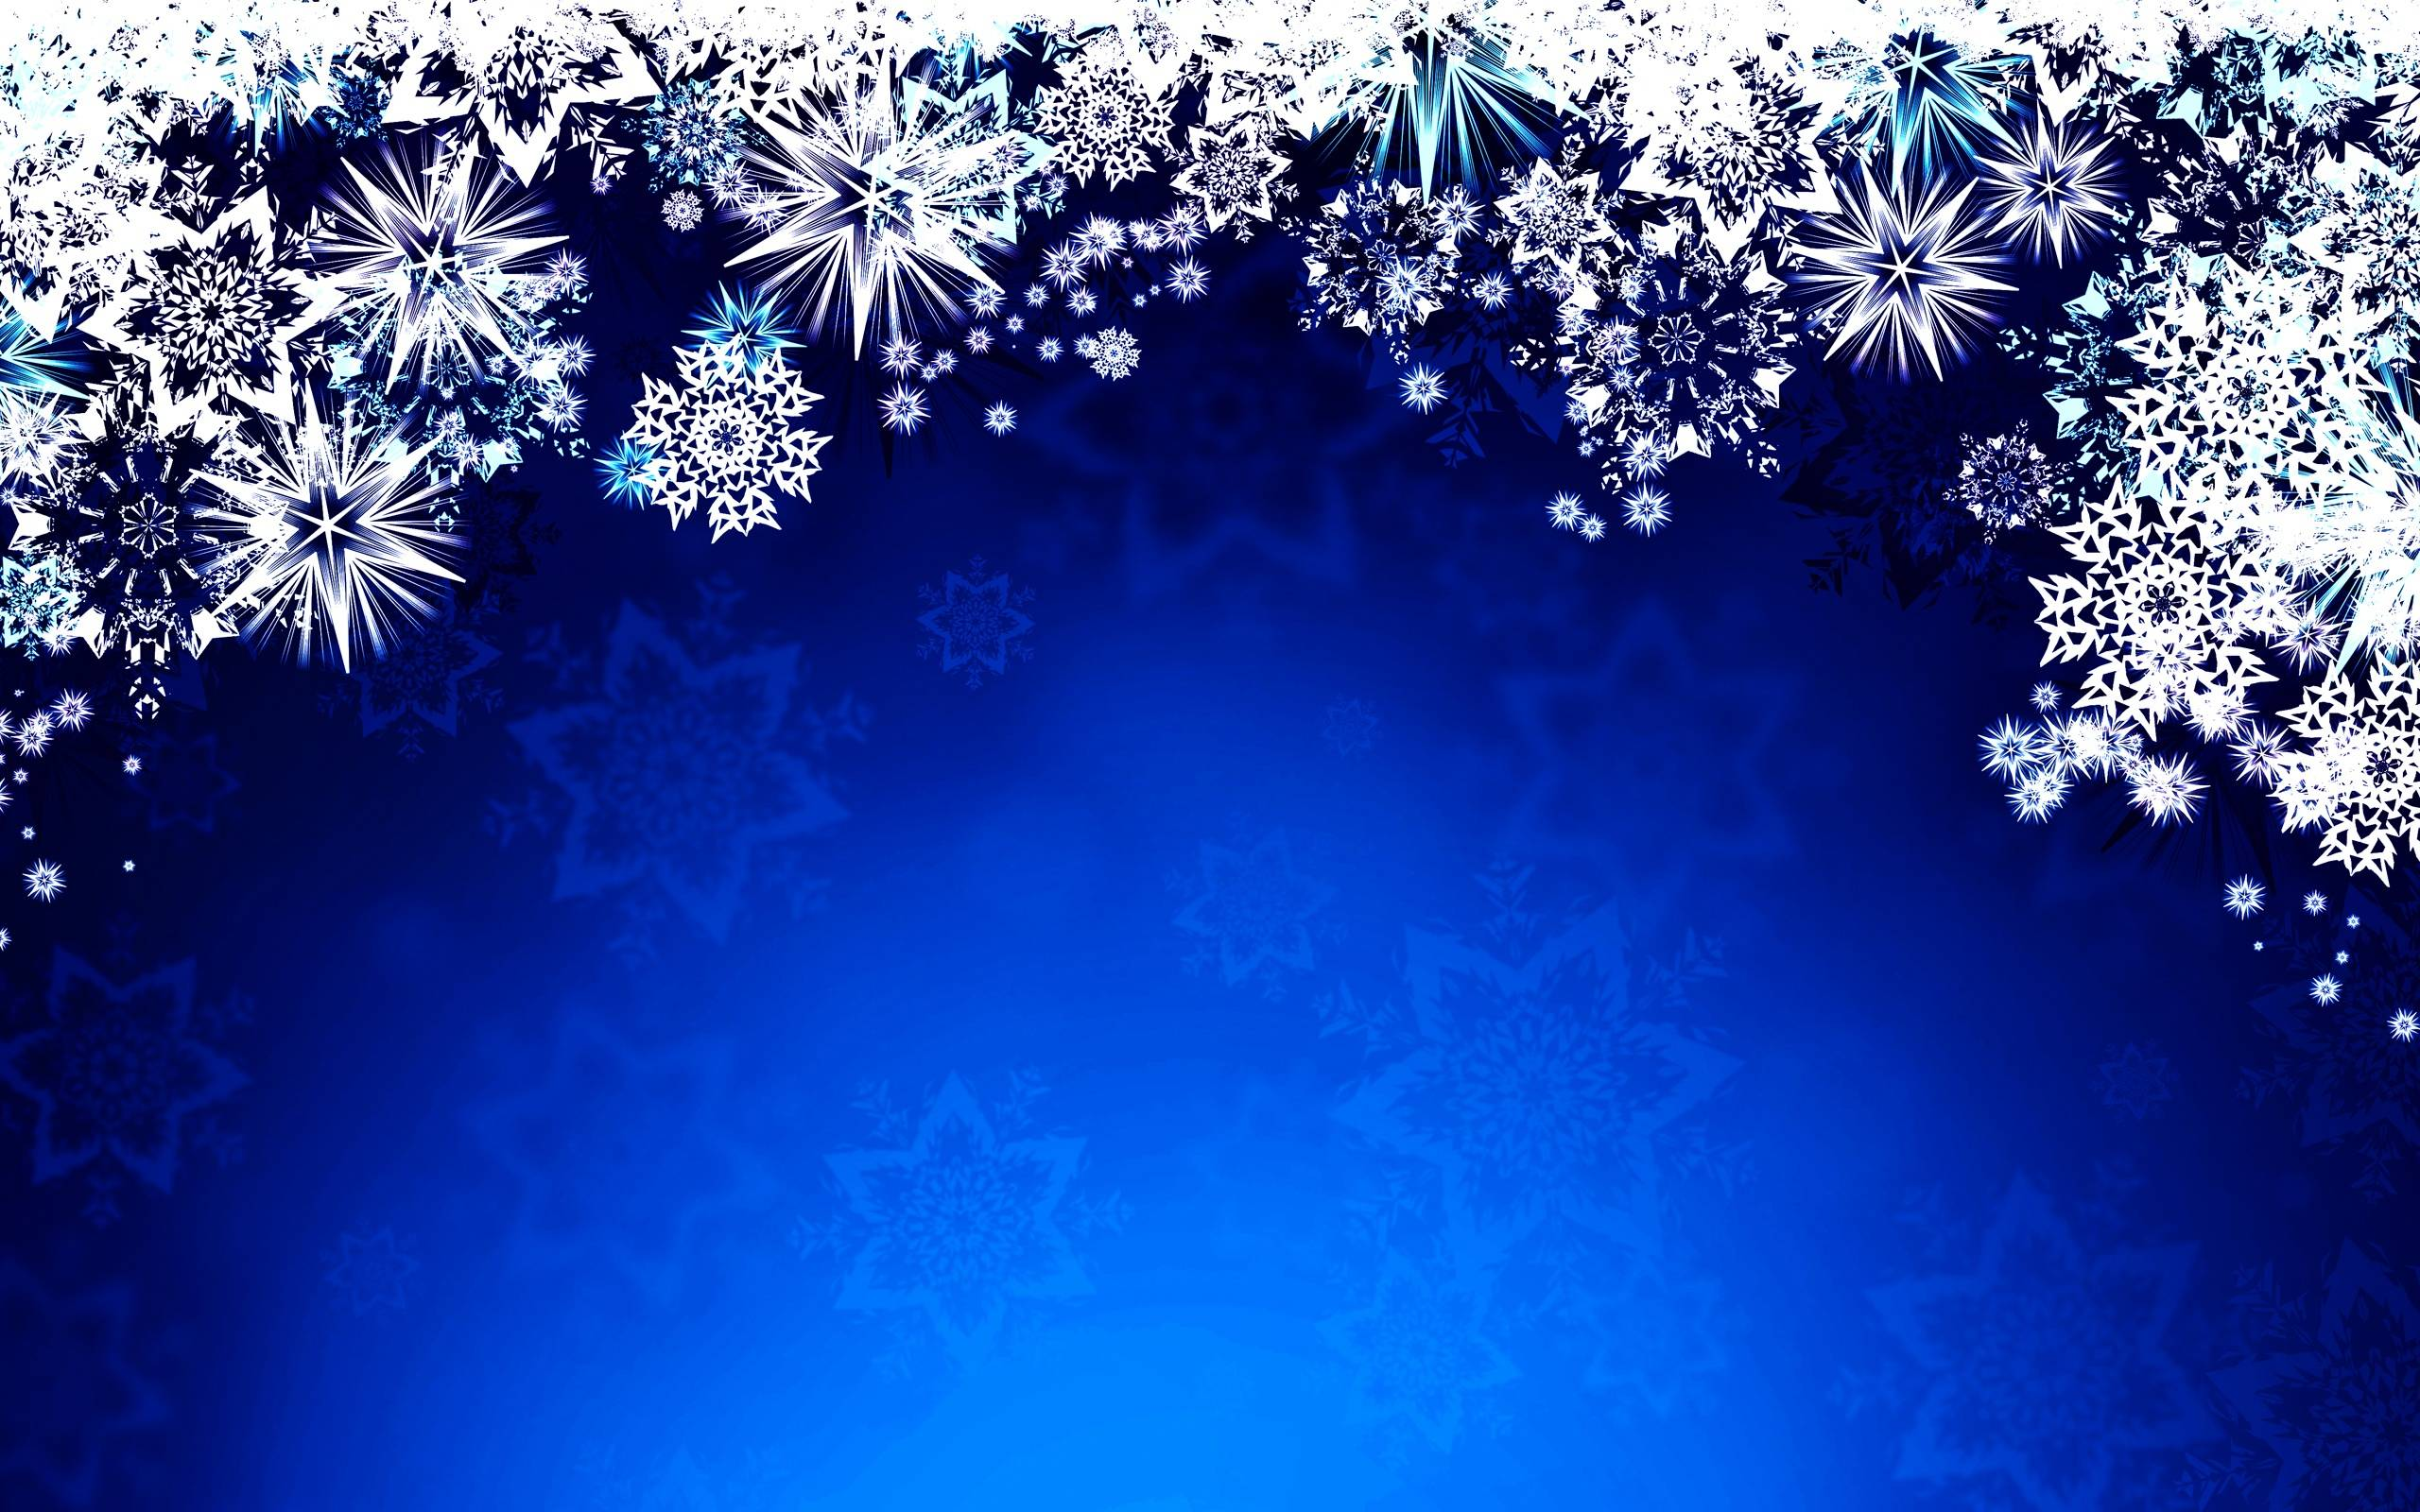 Real Snowflakes Isolated On Black Background Stock ... |Real Snowflakes Background